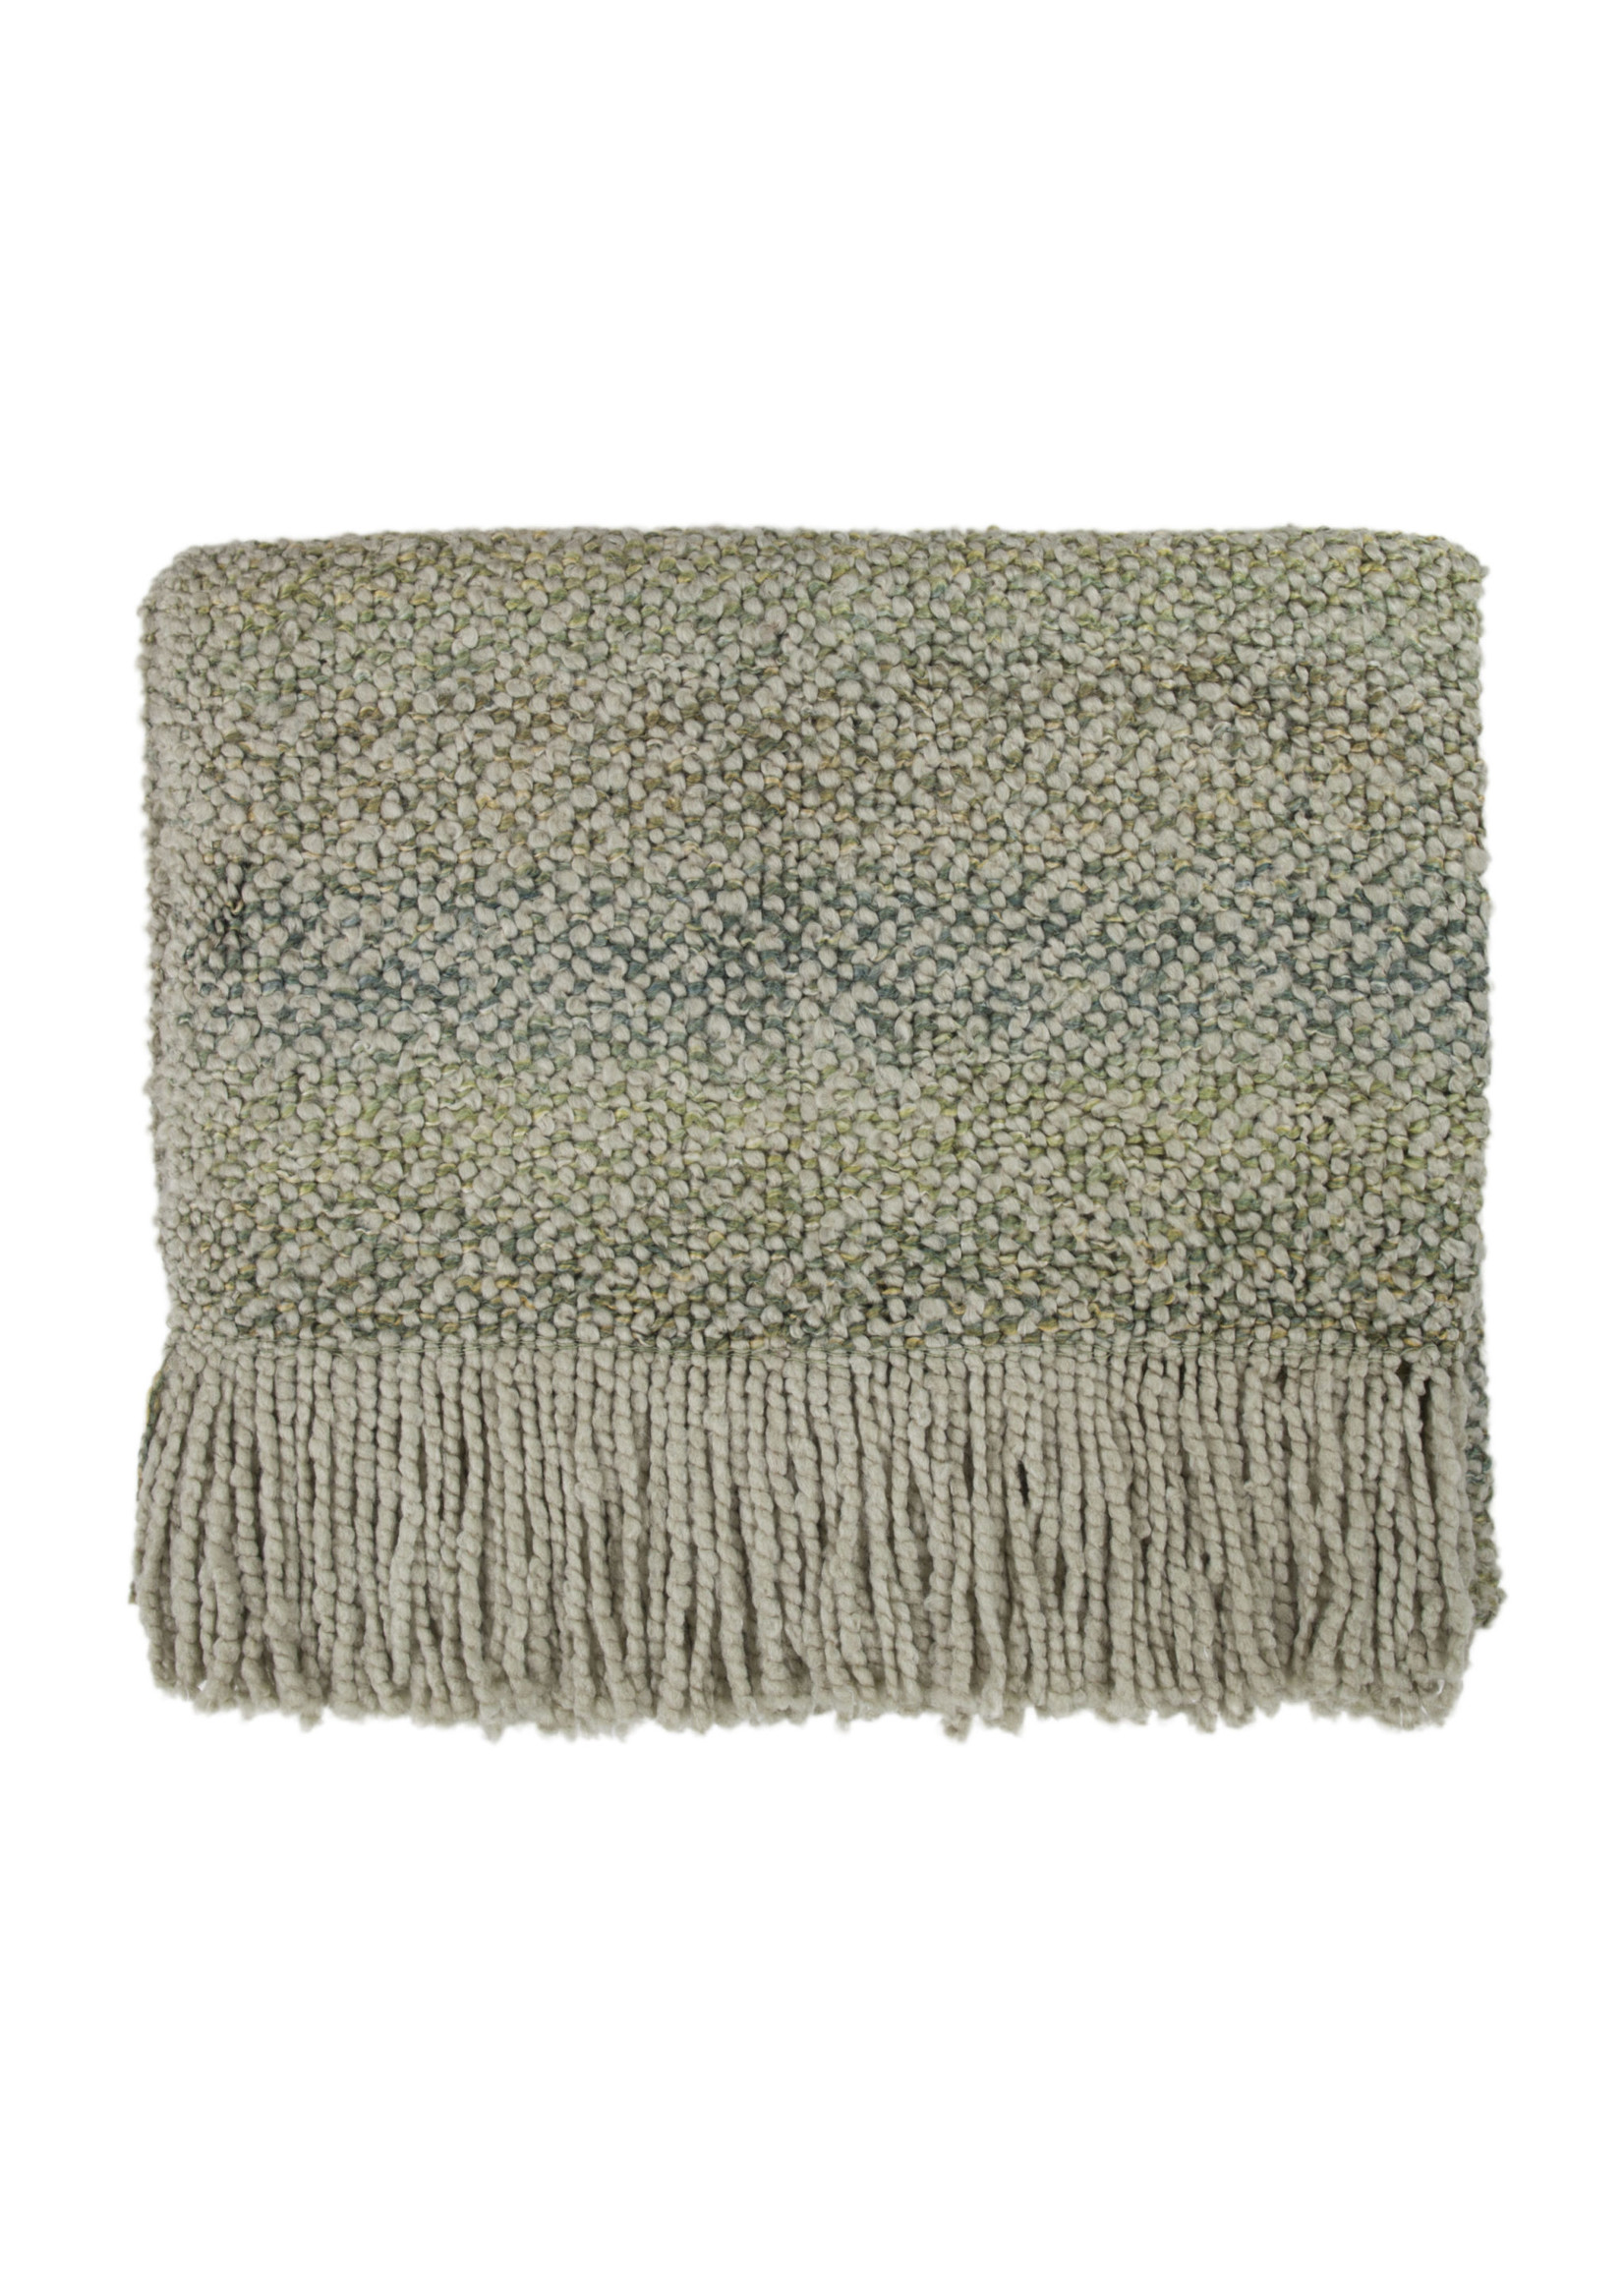 CAMPBELL MEADOW THROW